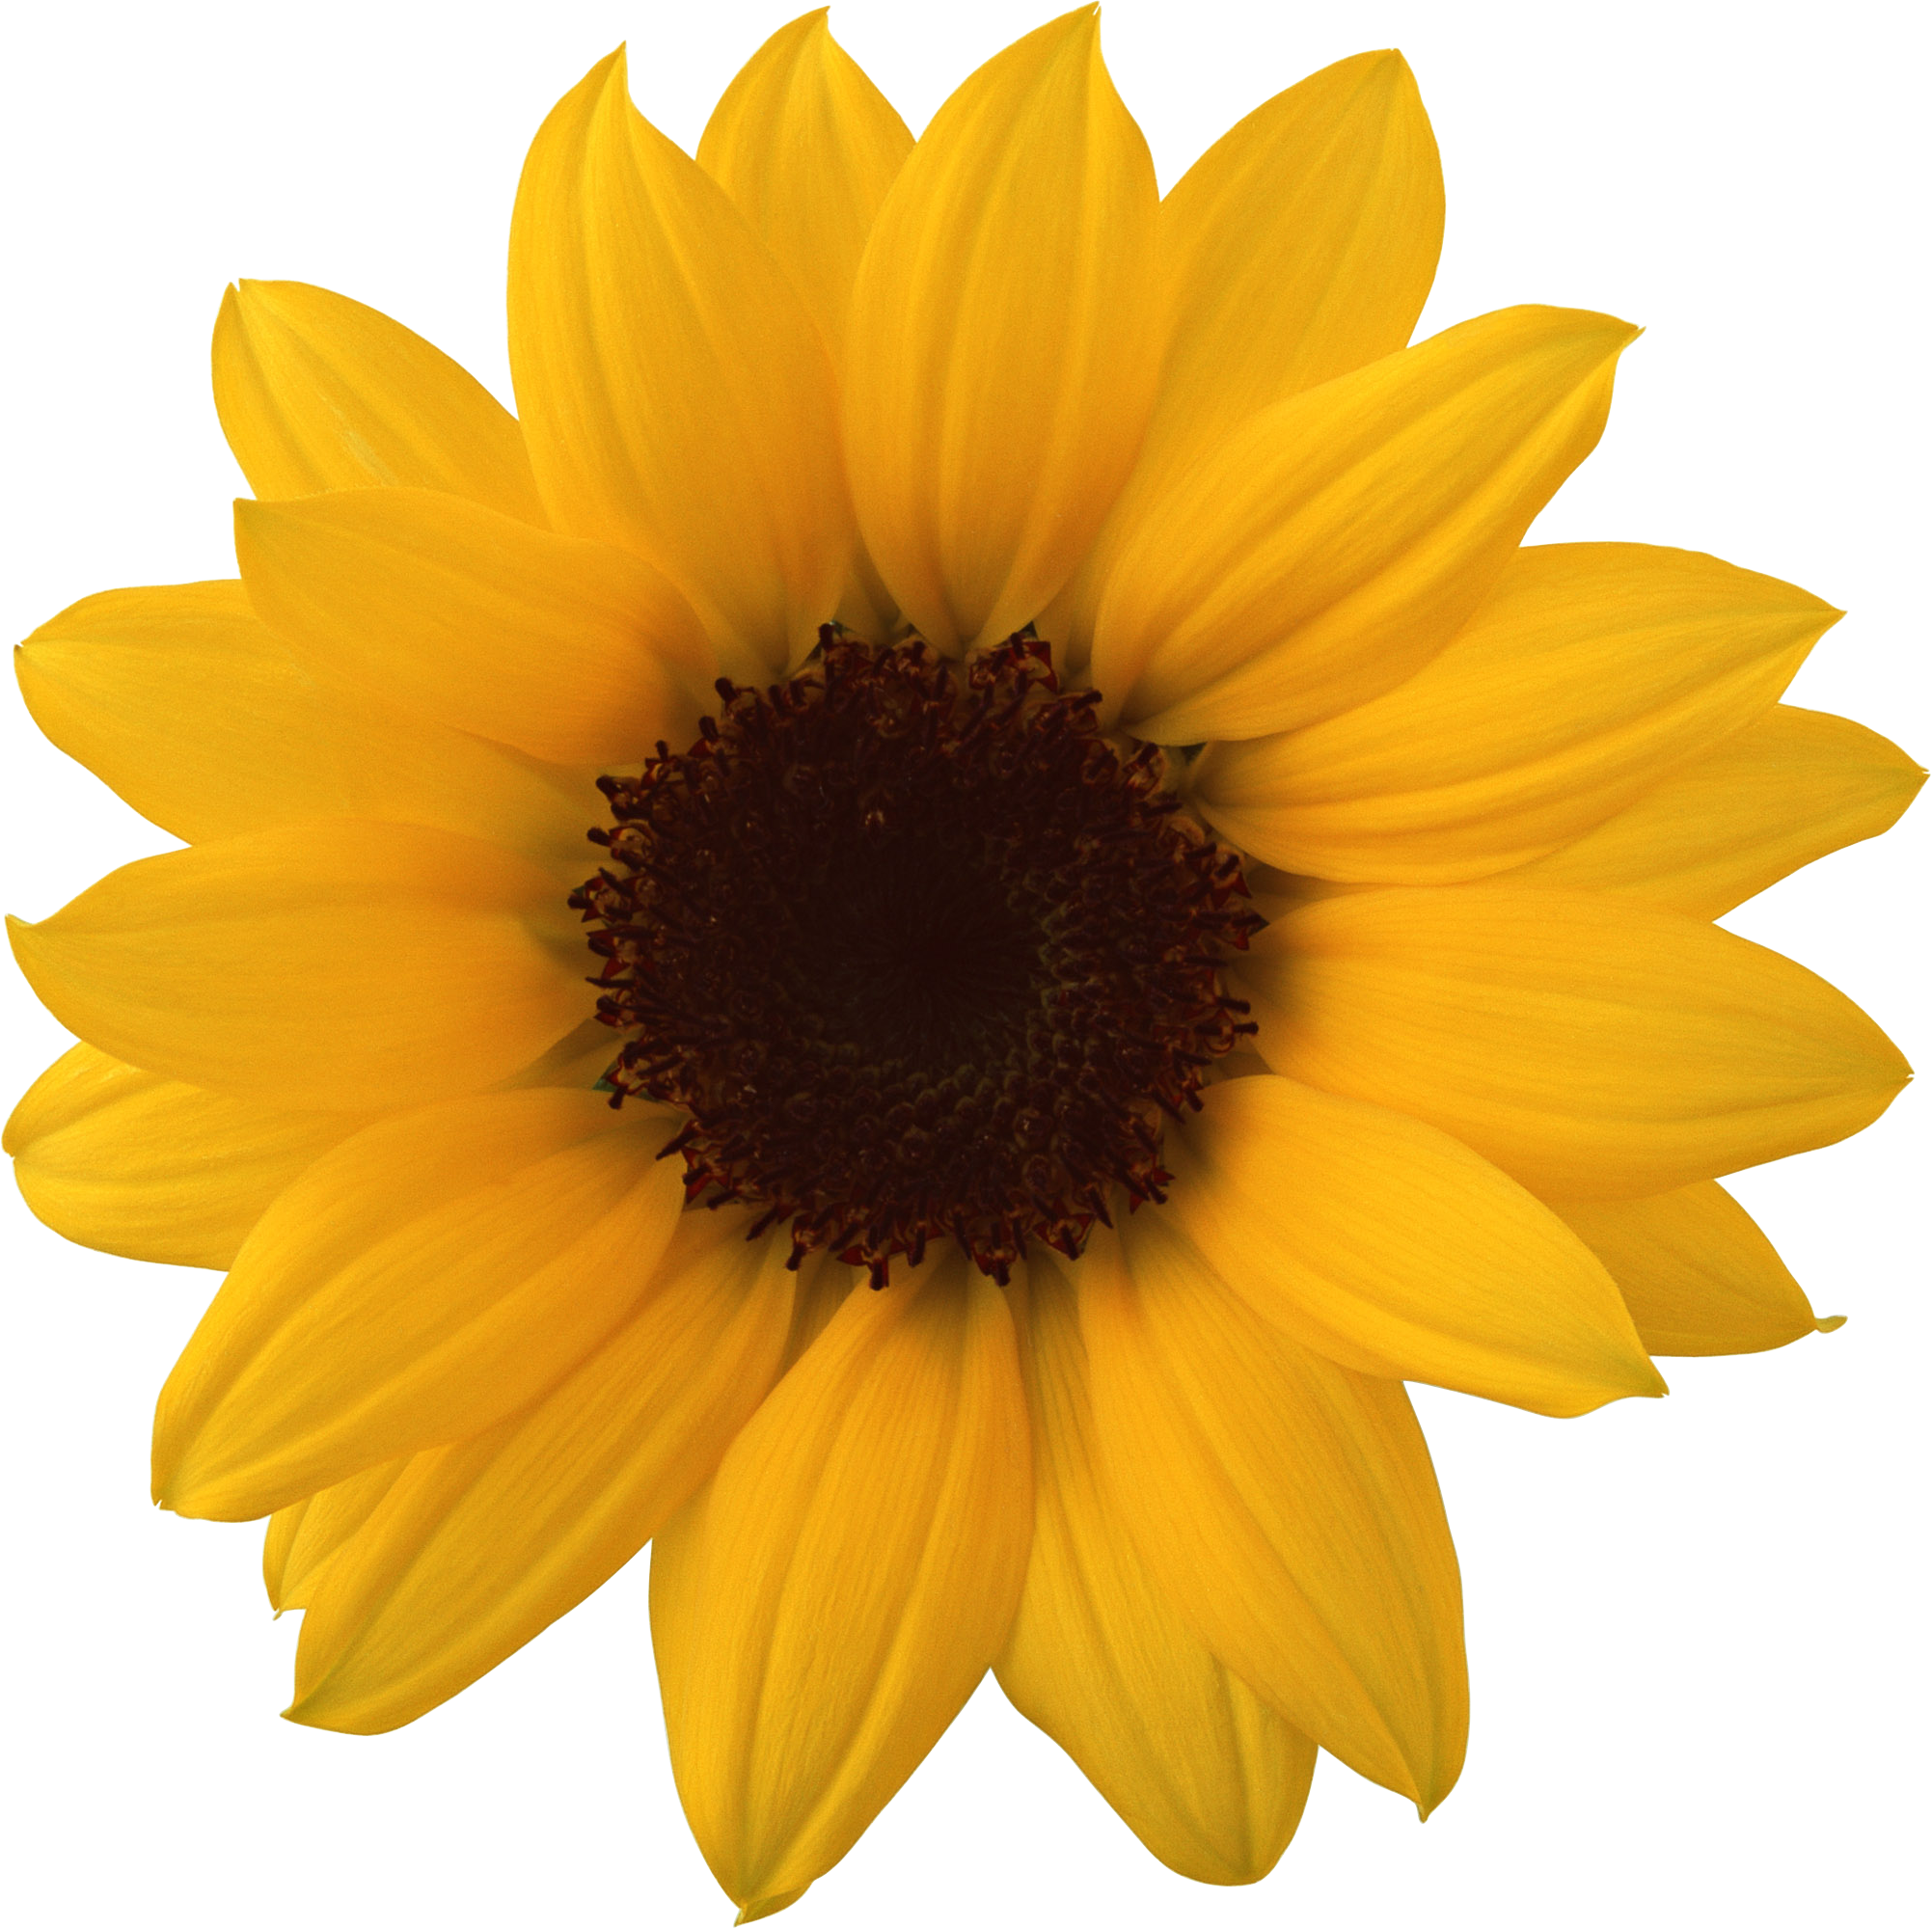 Sunflower png realistic. Images free download